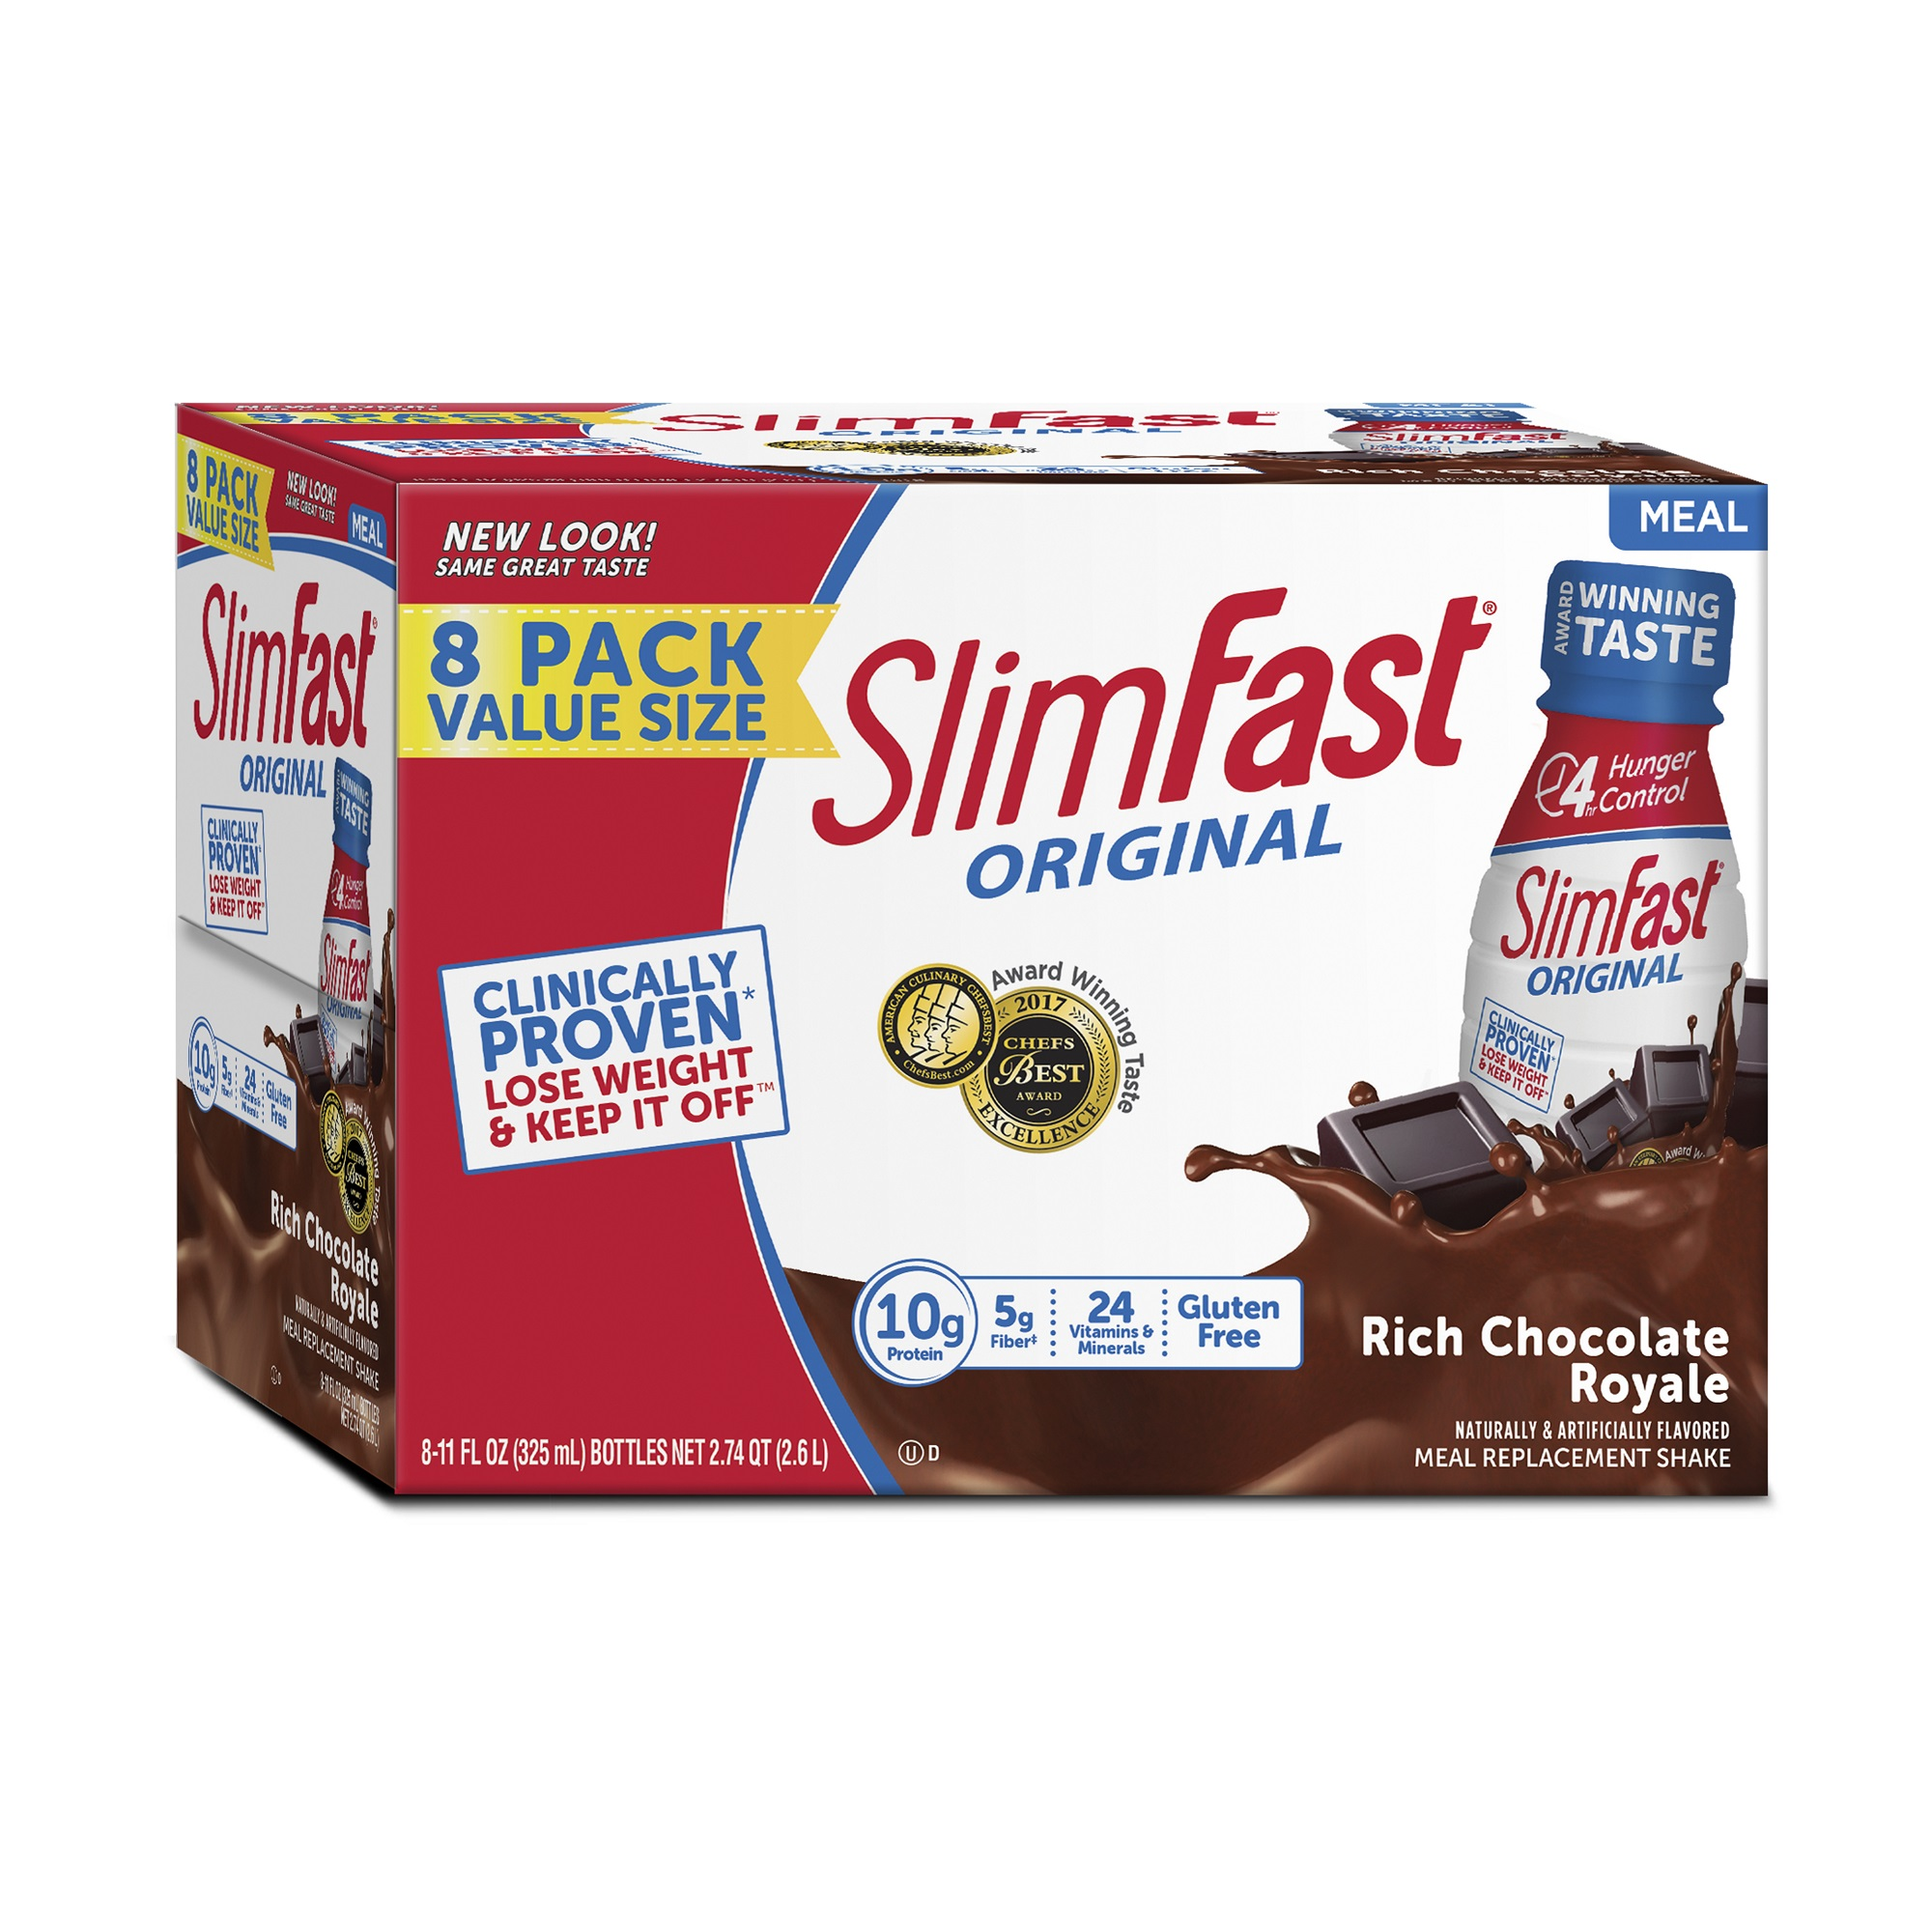 SlimFast Original Meal Replacement Shakes, Rich Chocolate Royale, 11 Fl oz, 8 Ct